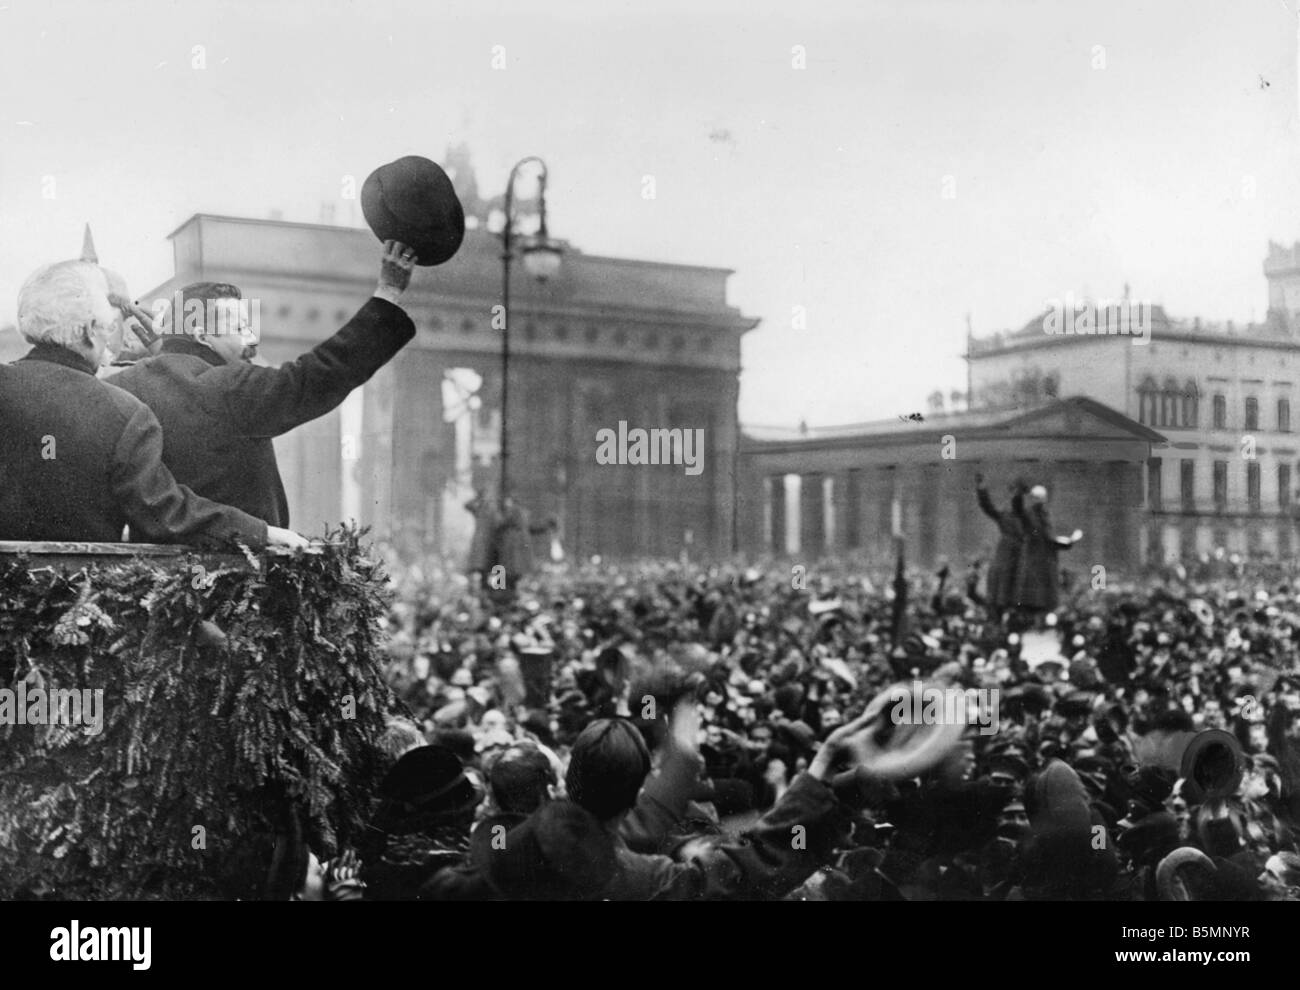 8 1918 12 0 A1 F Ebert greets soldiers Berlin 1918 Berlin December 1918 The chairman of the Council of People s - Stock Image